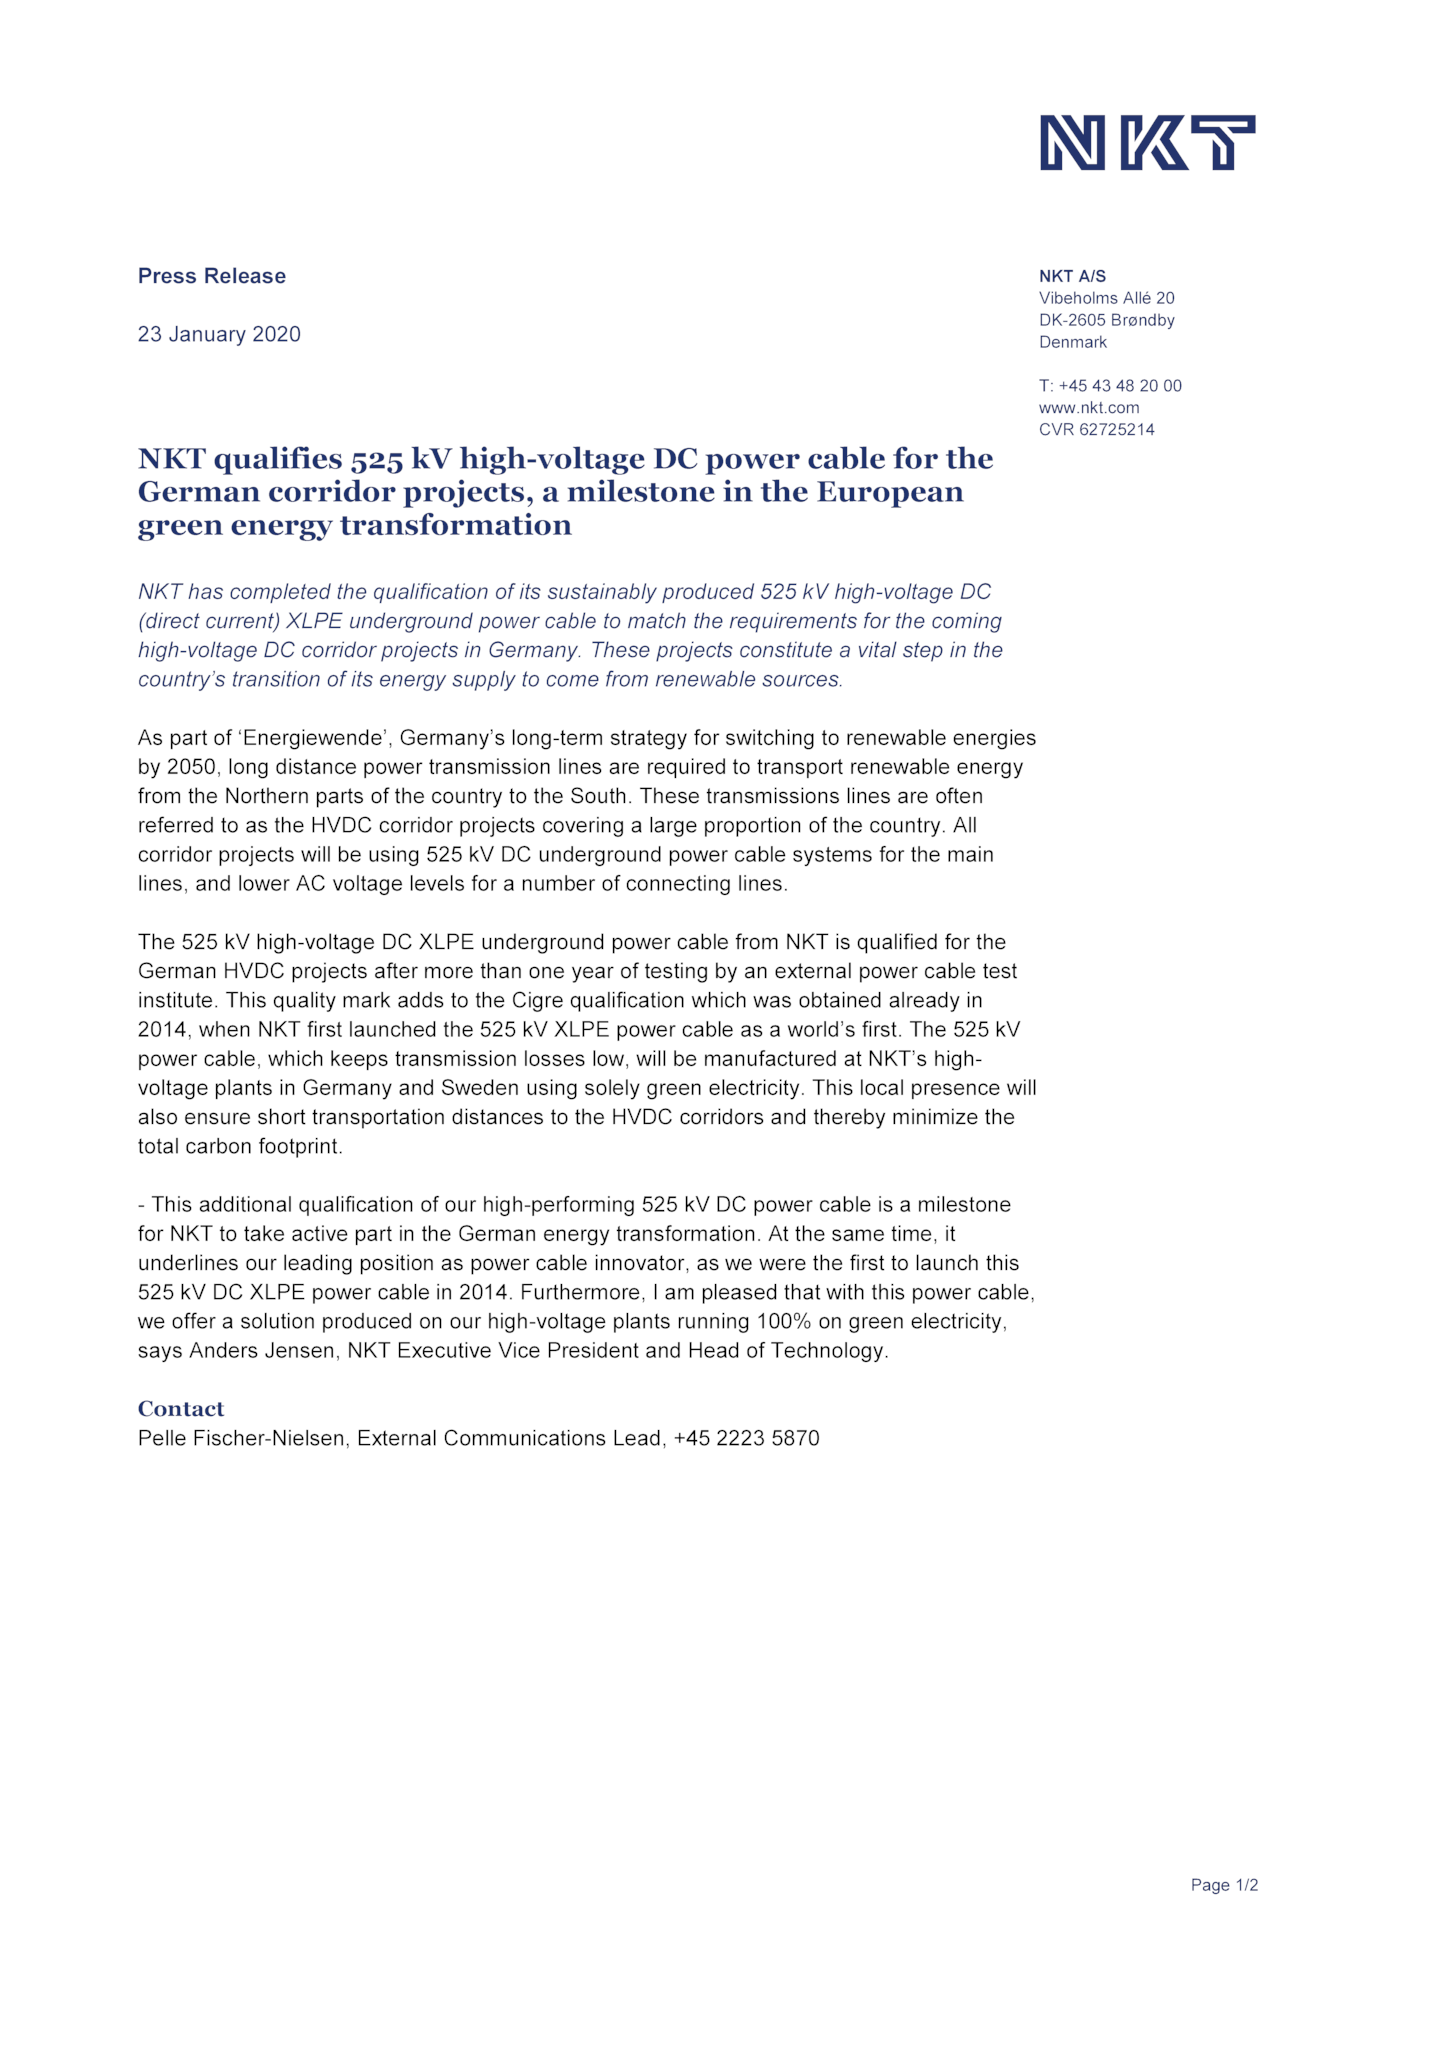 NKT qualifies 525 kV high-voltage DC power cable for the German corridor projects.pdf